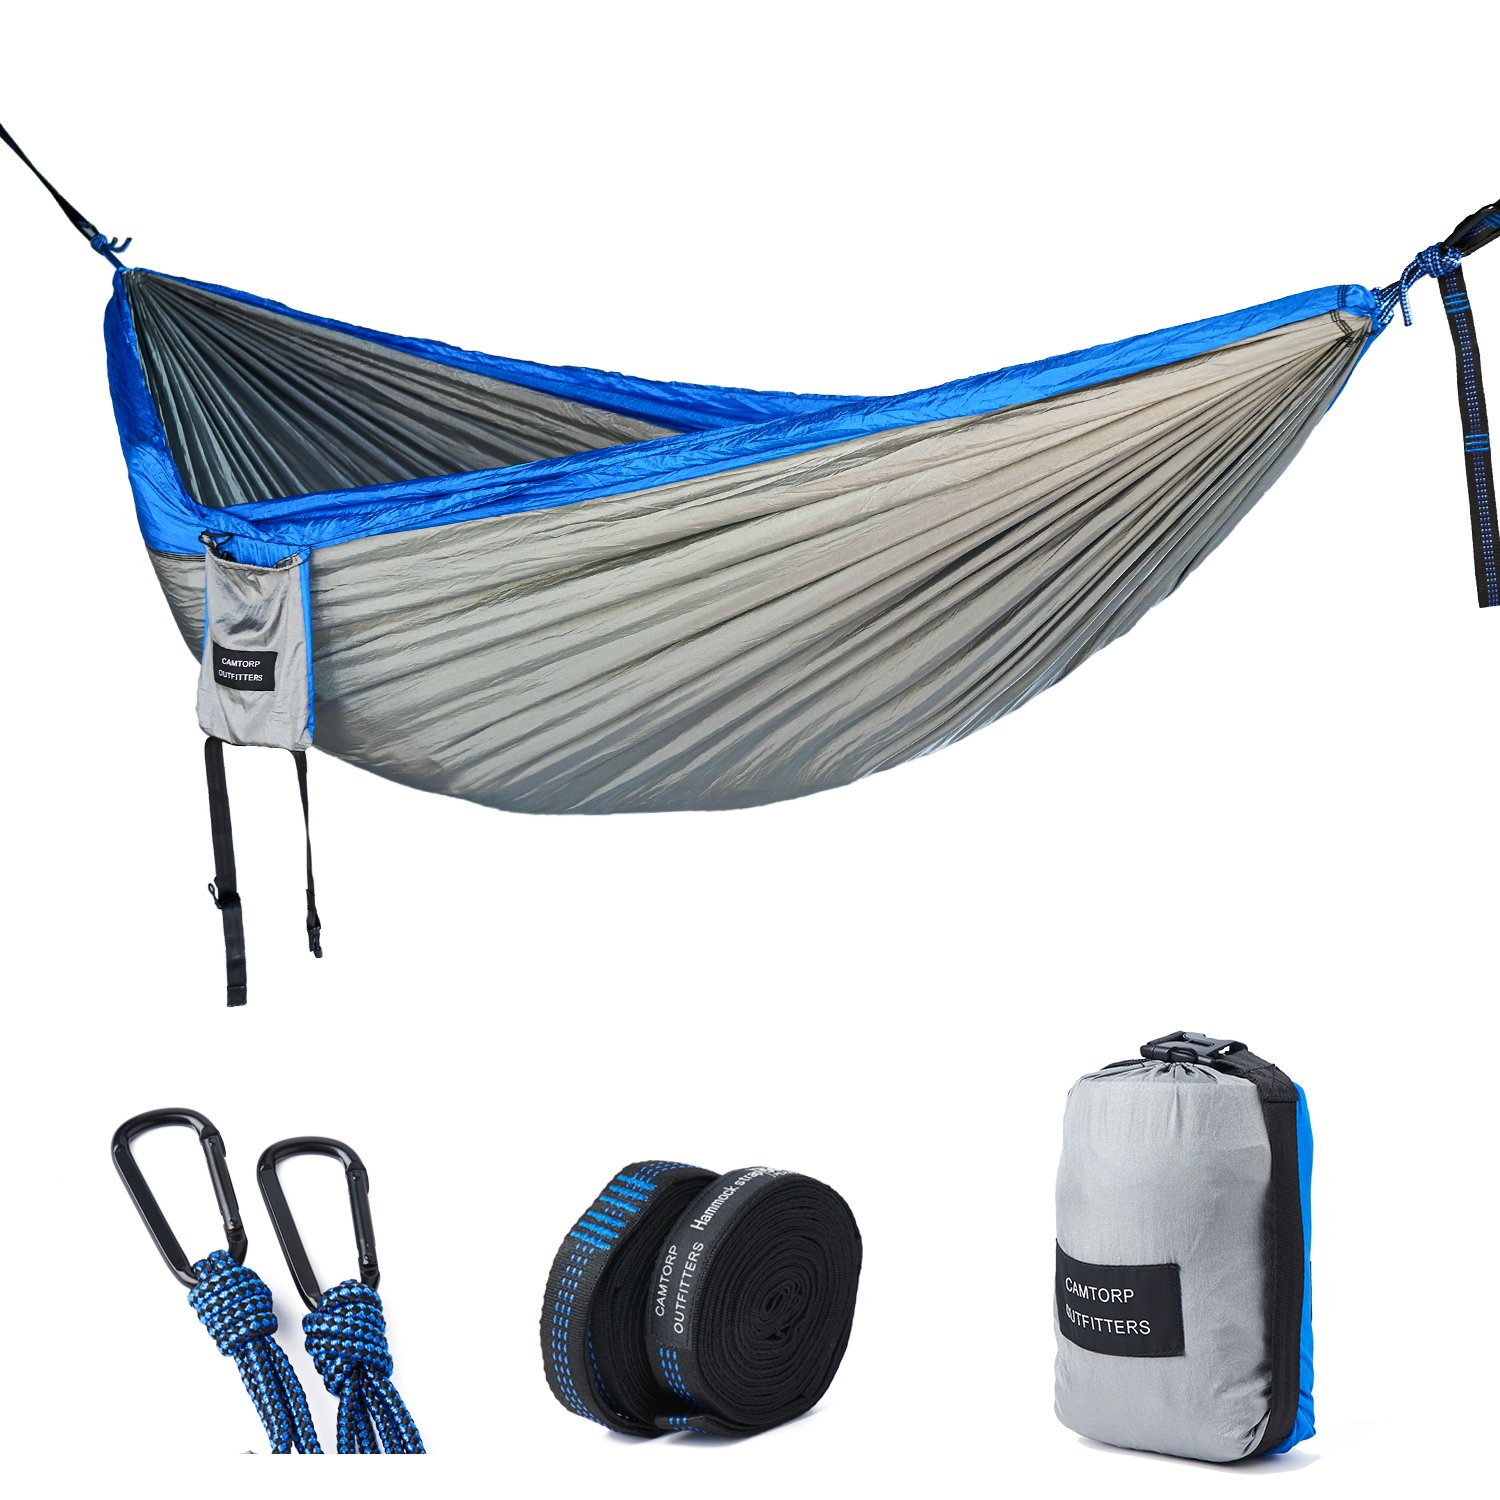 mosquito backpacking for tent dp straps with camping tree cambond net parachute woot bed hammocks hammock hanging lightweight portable amazon com